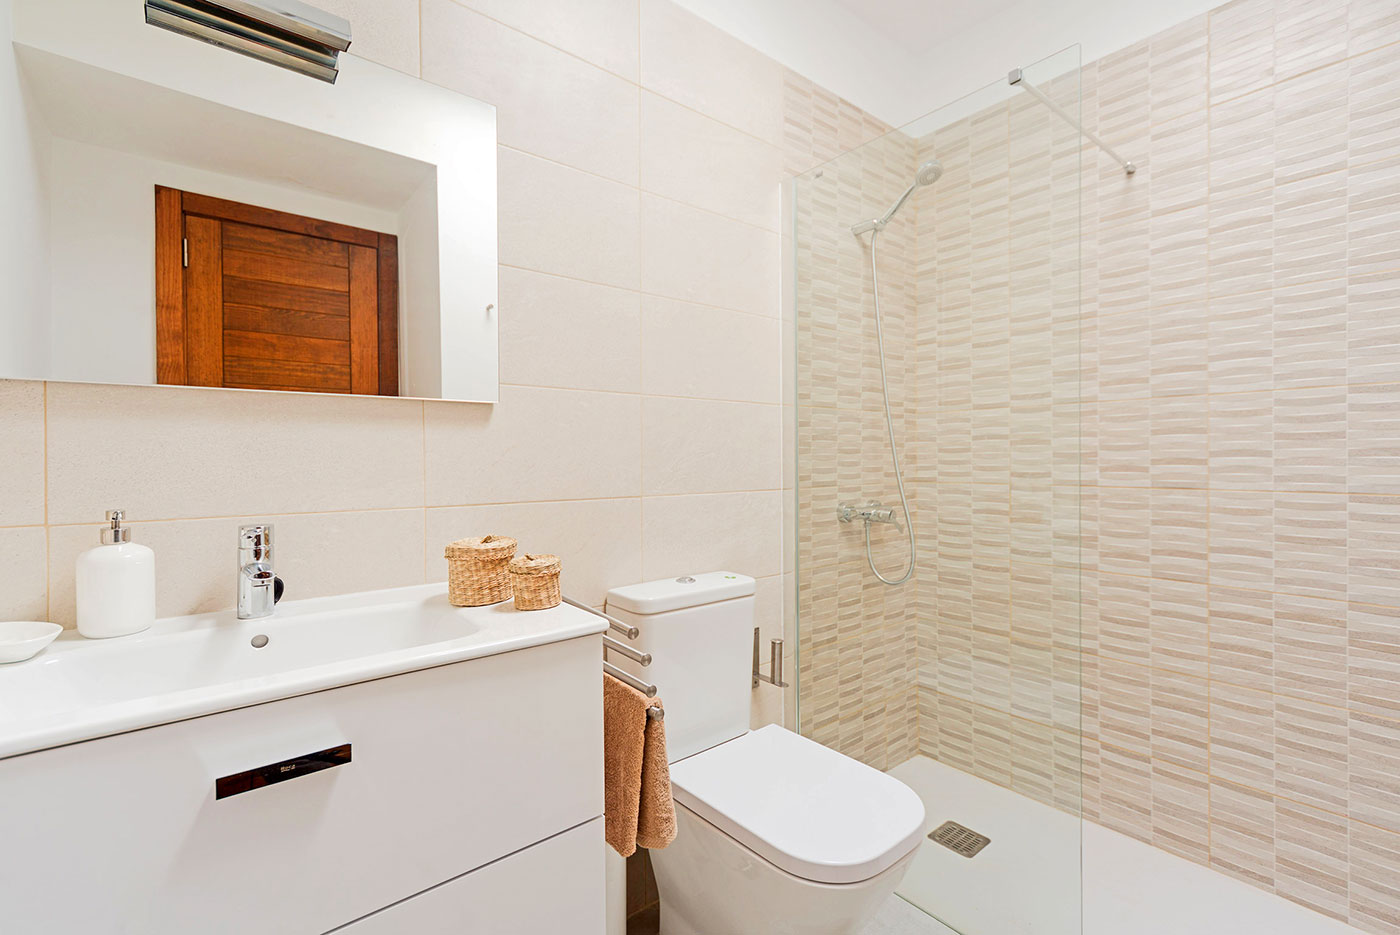 Villas-de-la-Marina-bathroom-en-suite